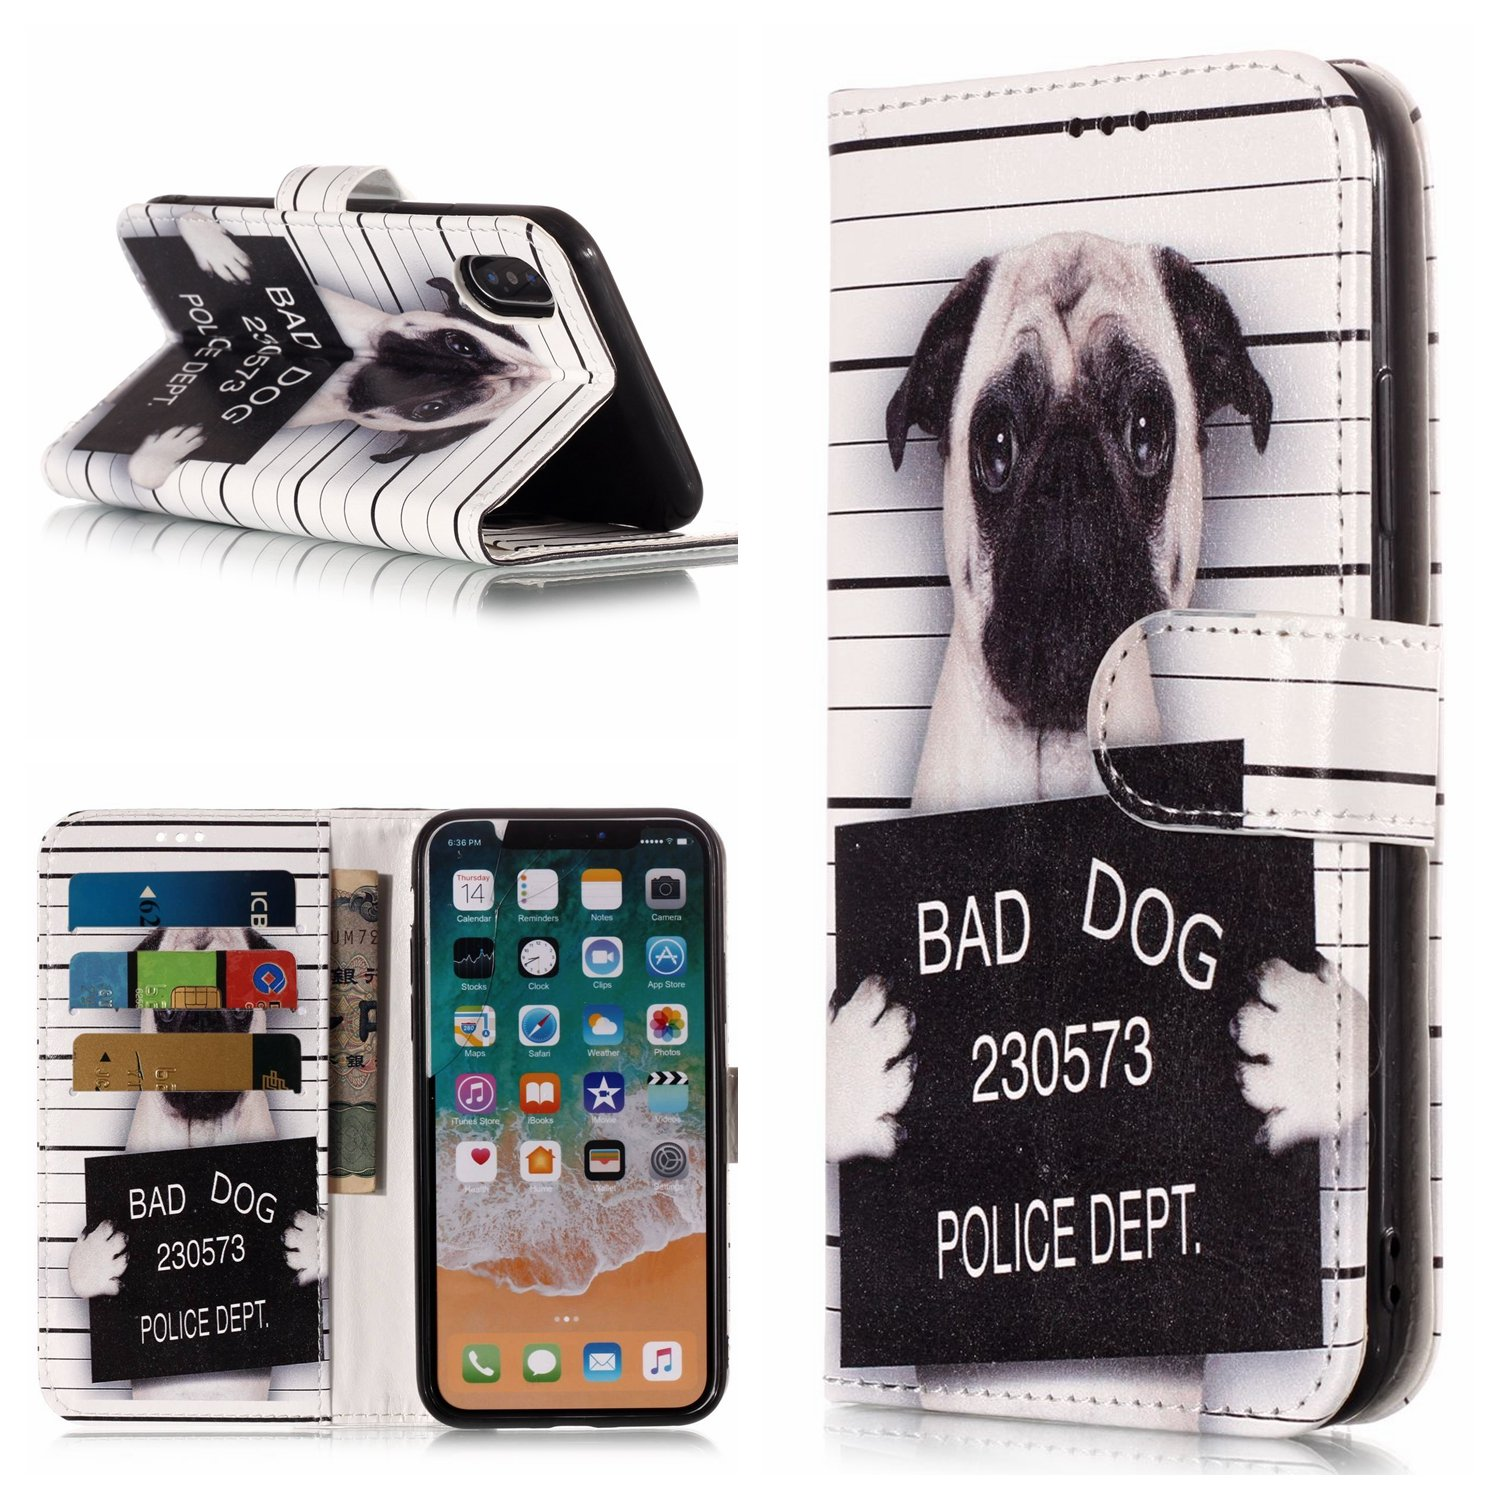 DAMONDY iPhone X Case, Shiny Marble Cute Pattern Wallet Purse Credit Card ID Holders Design Flip Leather Cover TPU Soft Bumper Kickstand Magnetic for iPhone X/10-bad dog